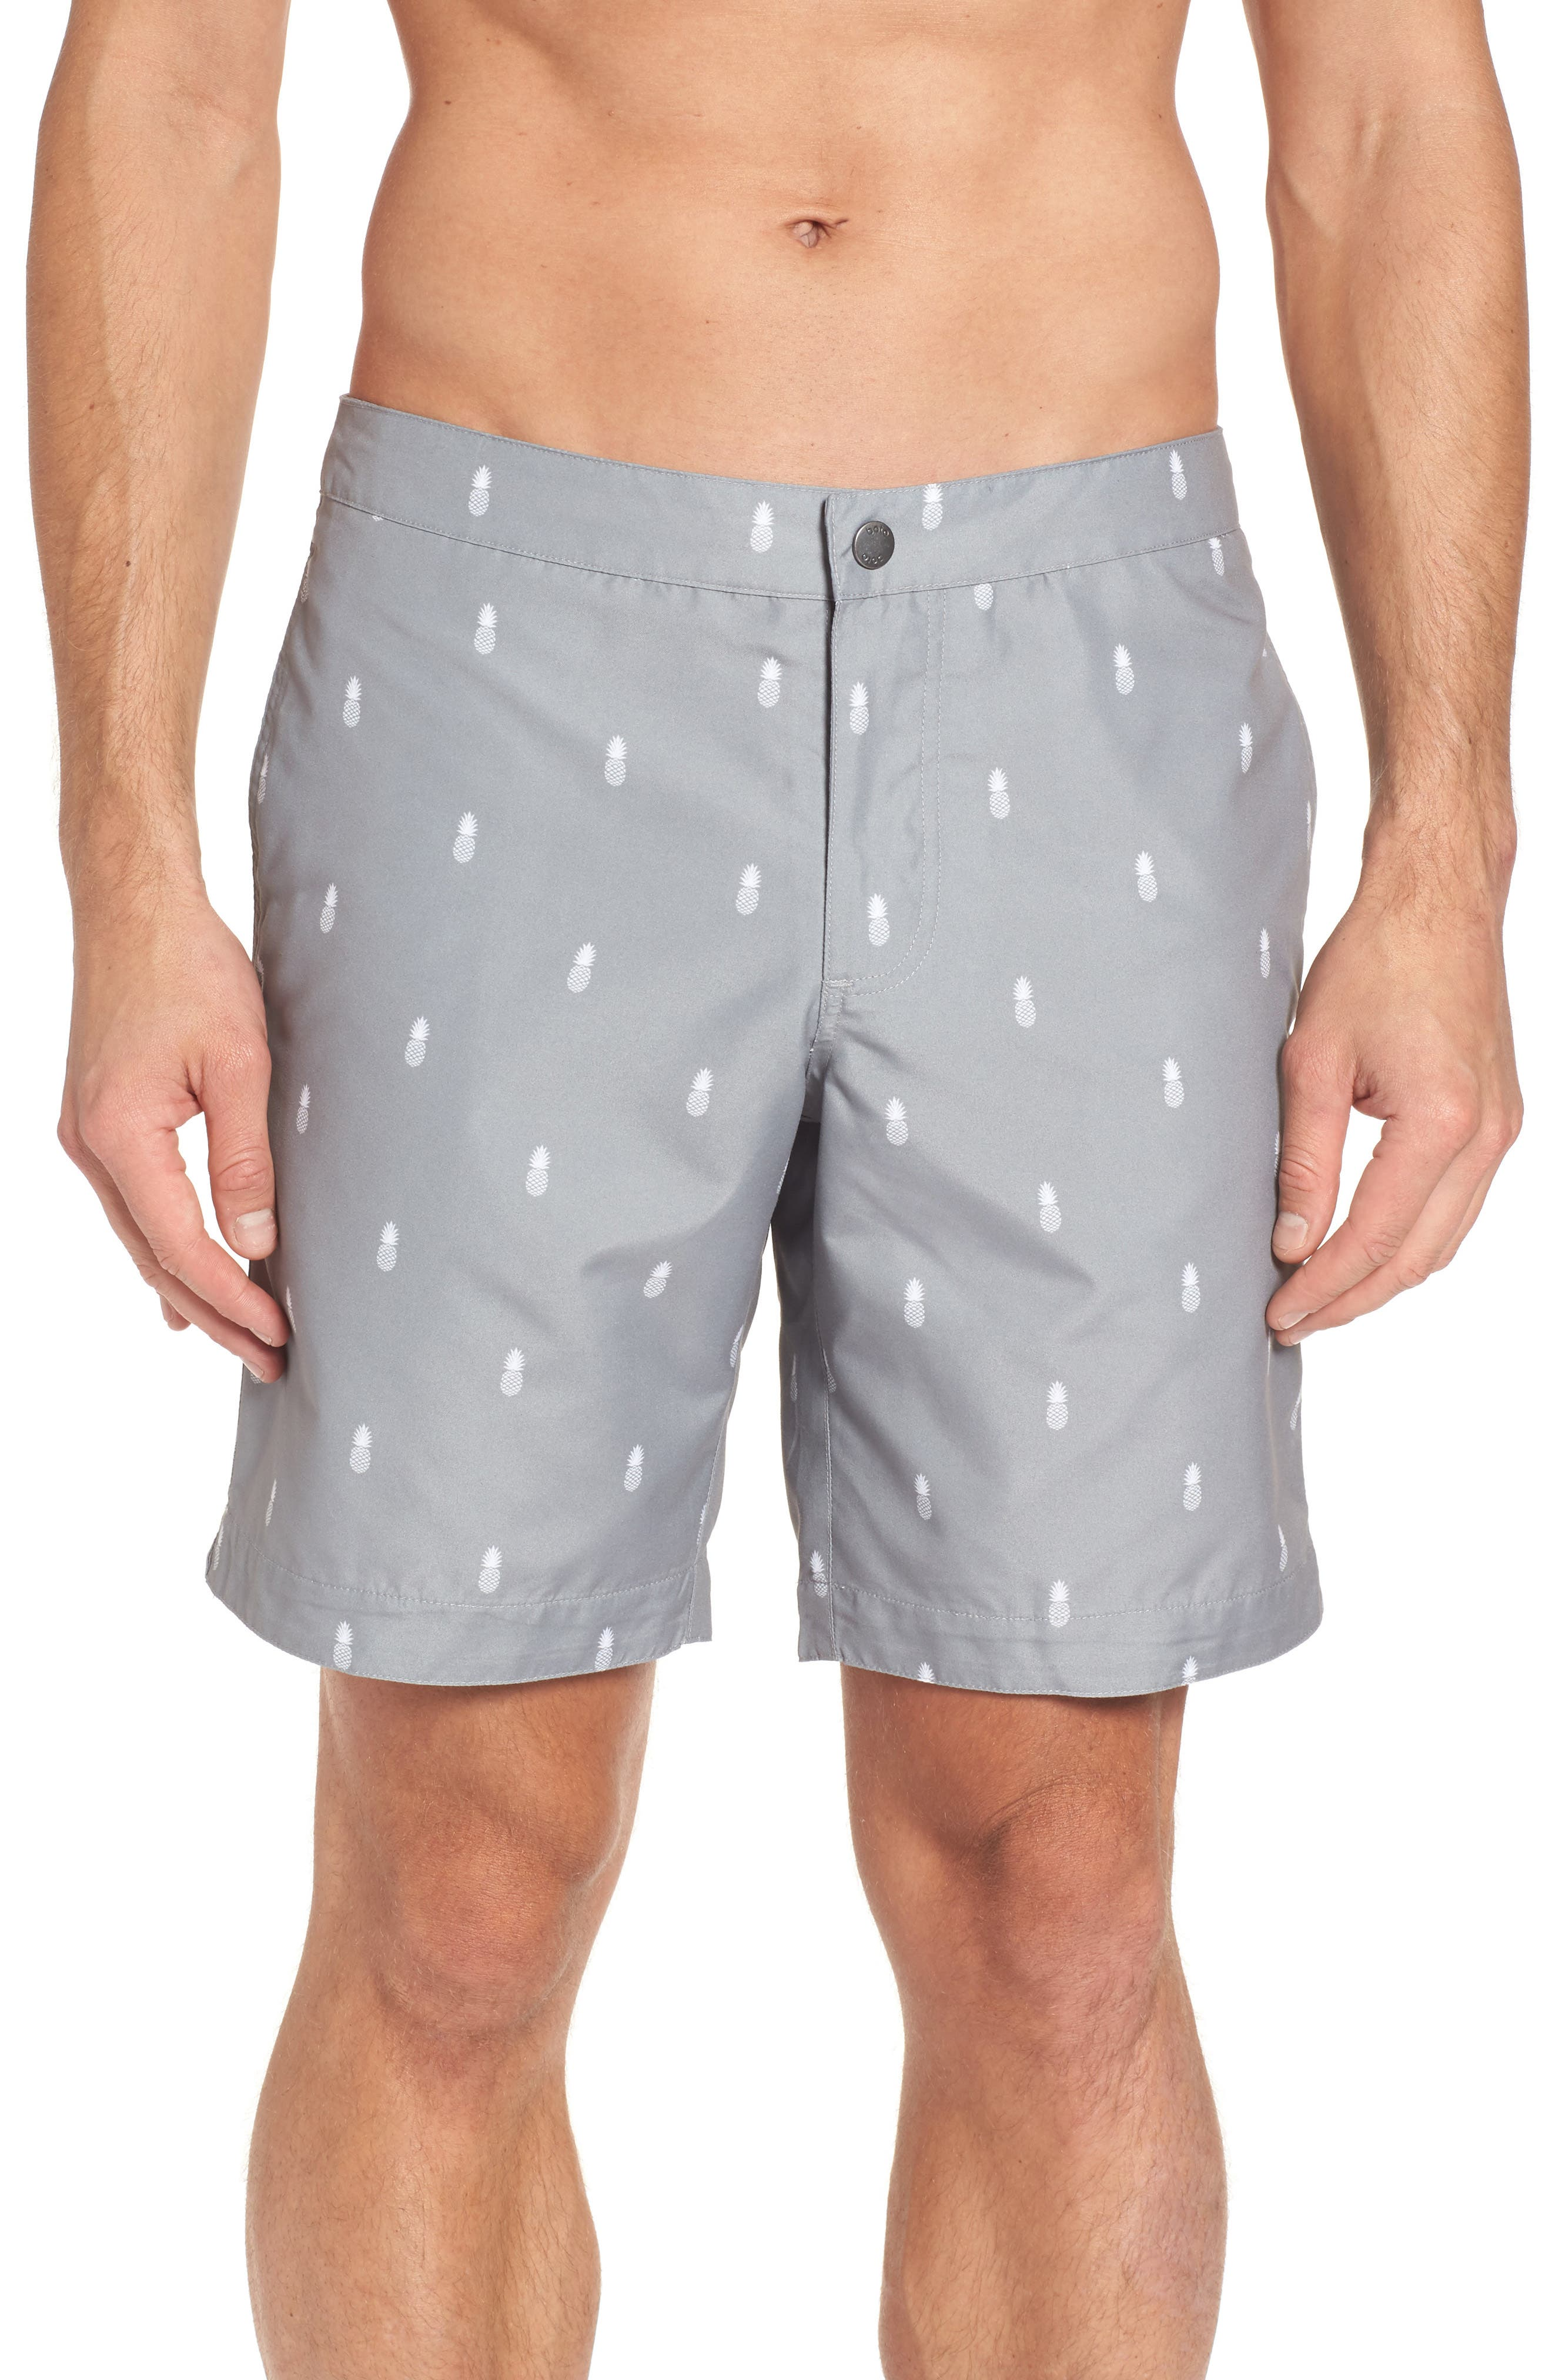 Aruba Tailored Fit Swim Trunks,                             Main thumbnail 1, color,                             Grey Pineapple Print